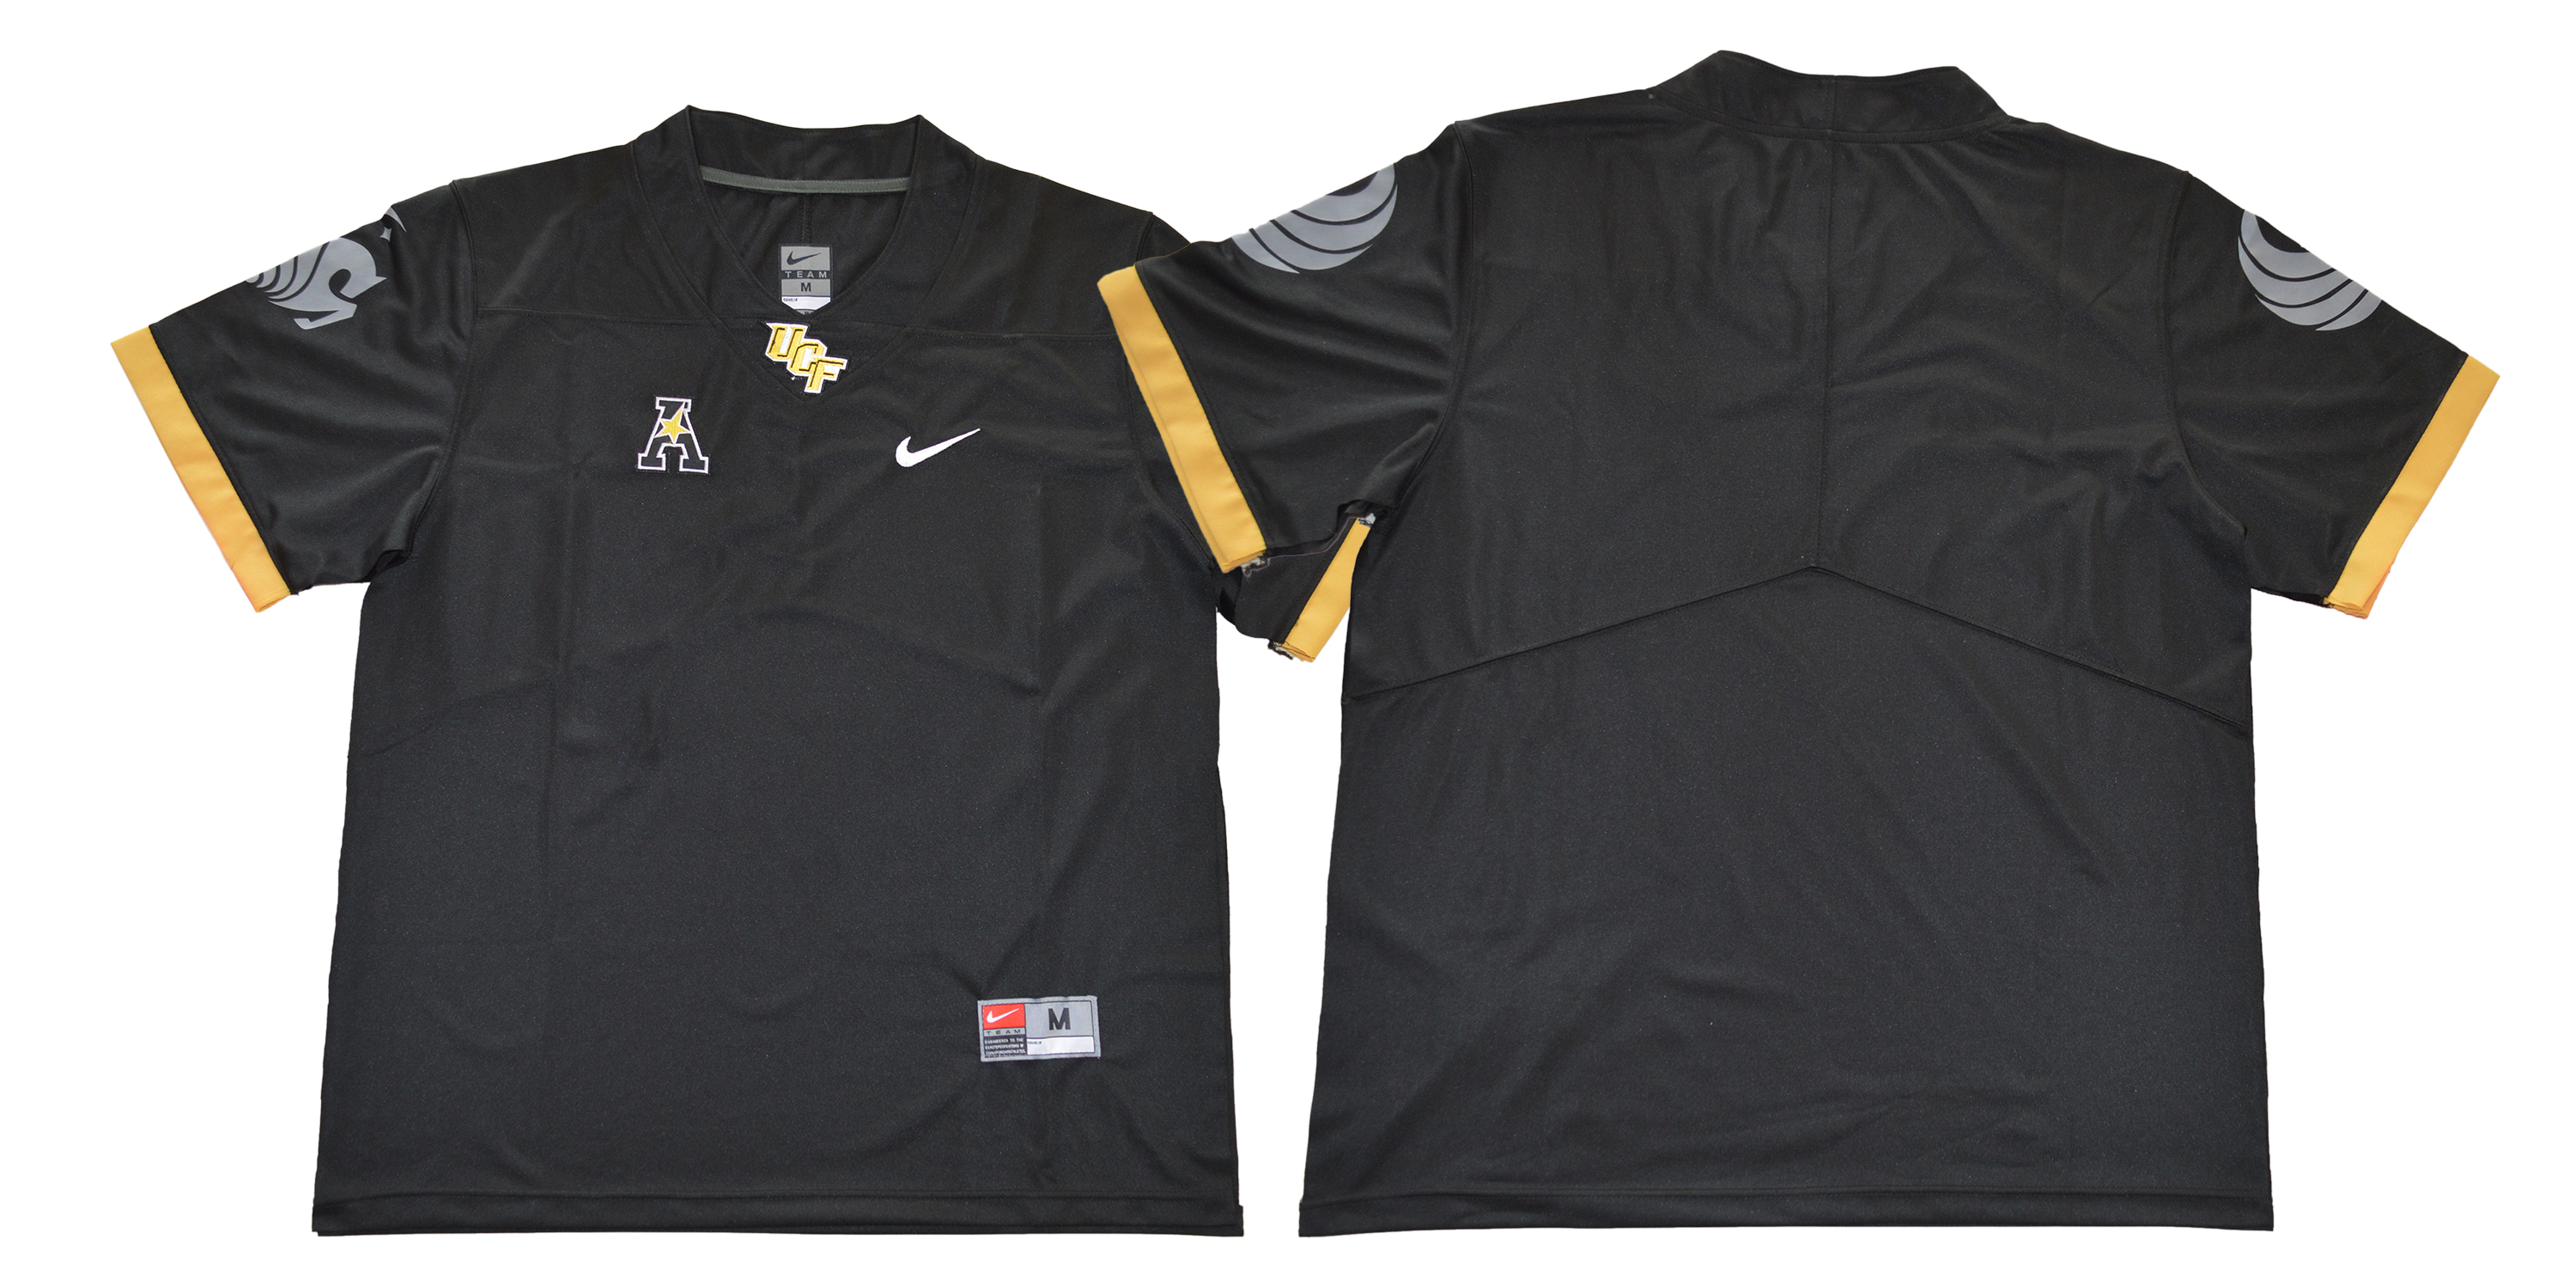 UCF Knights Blank Black College Football Jersey